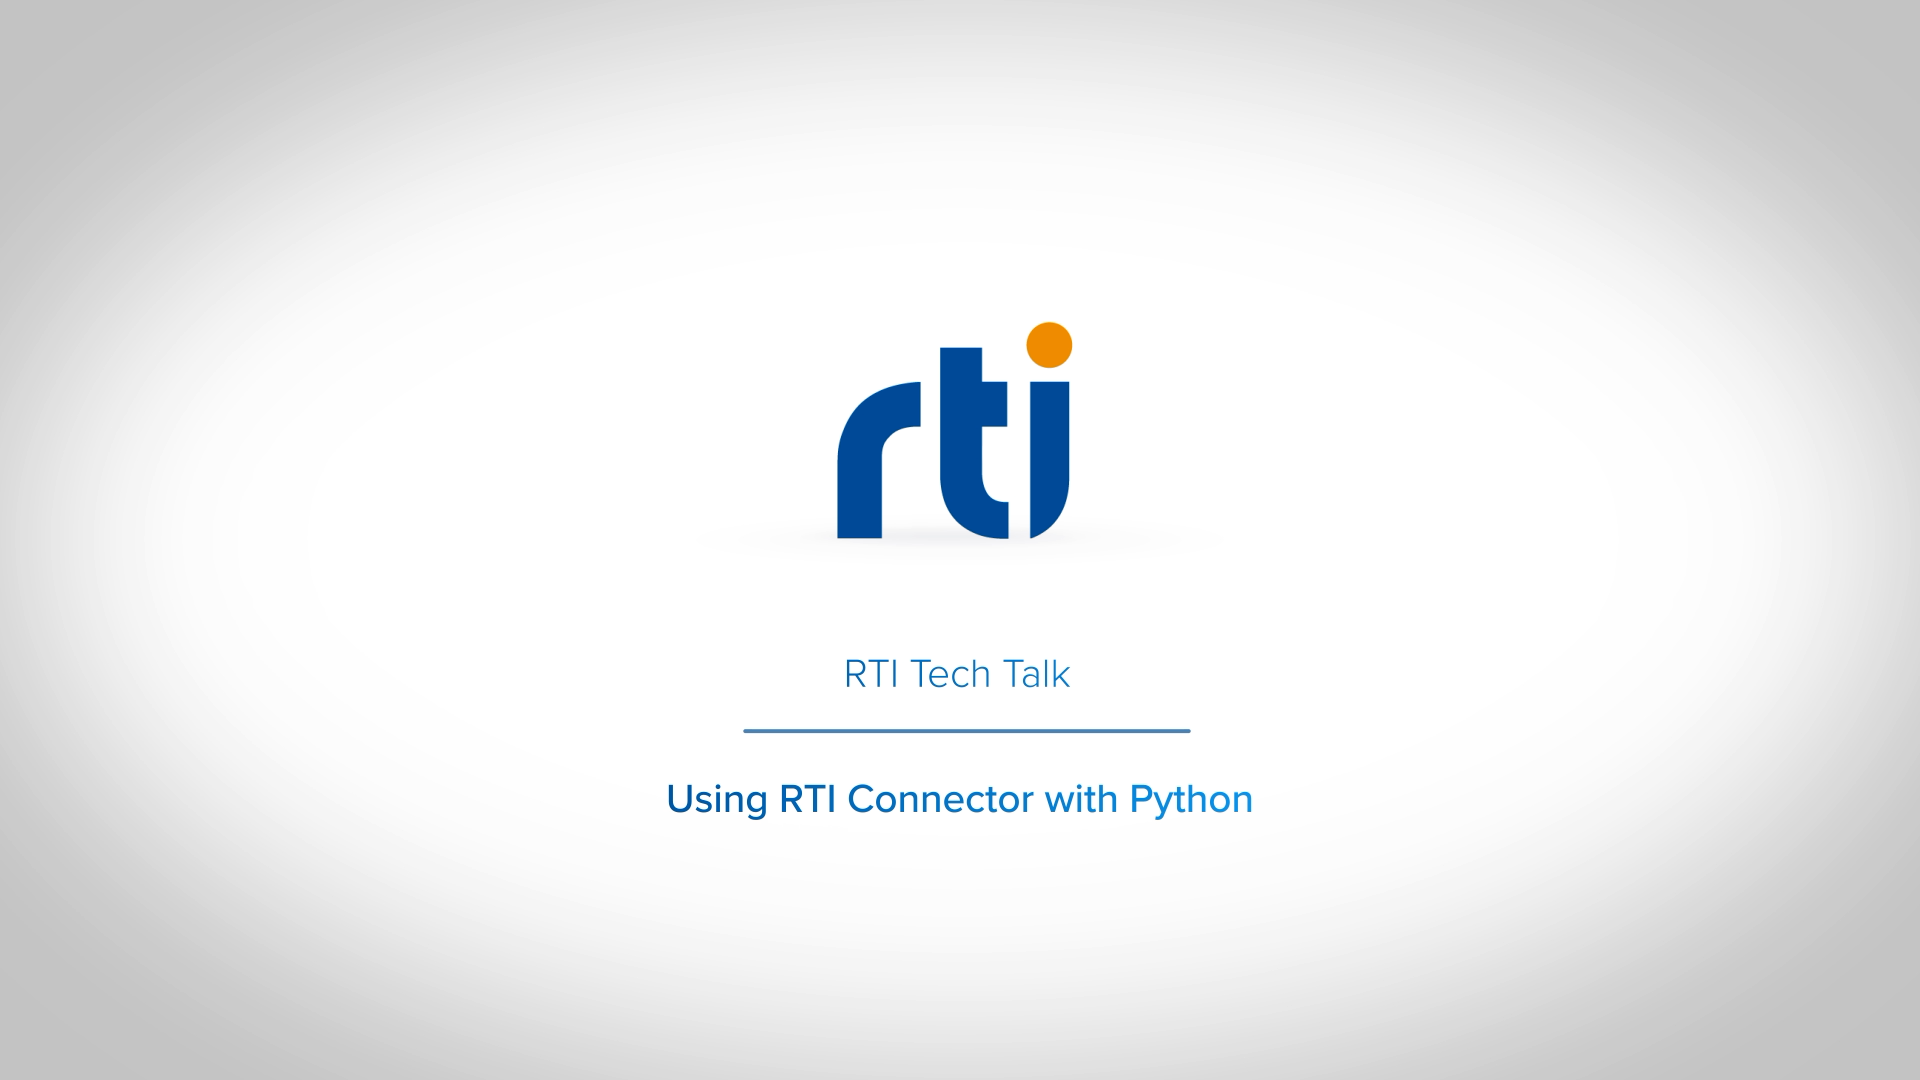 Using RTI Connector with Python